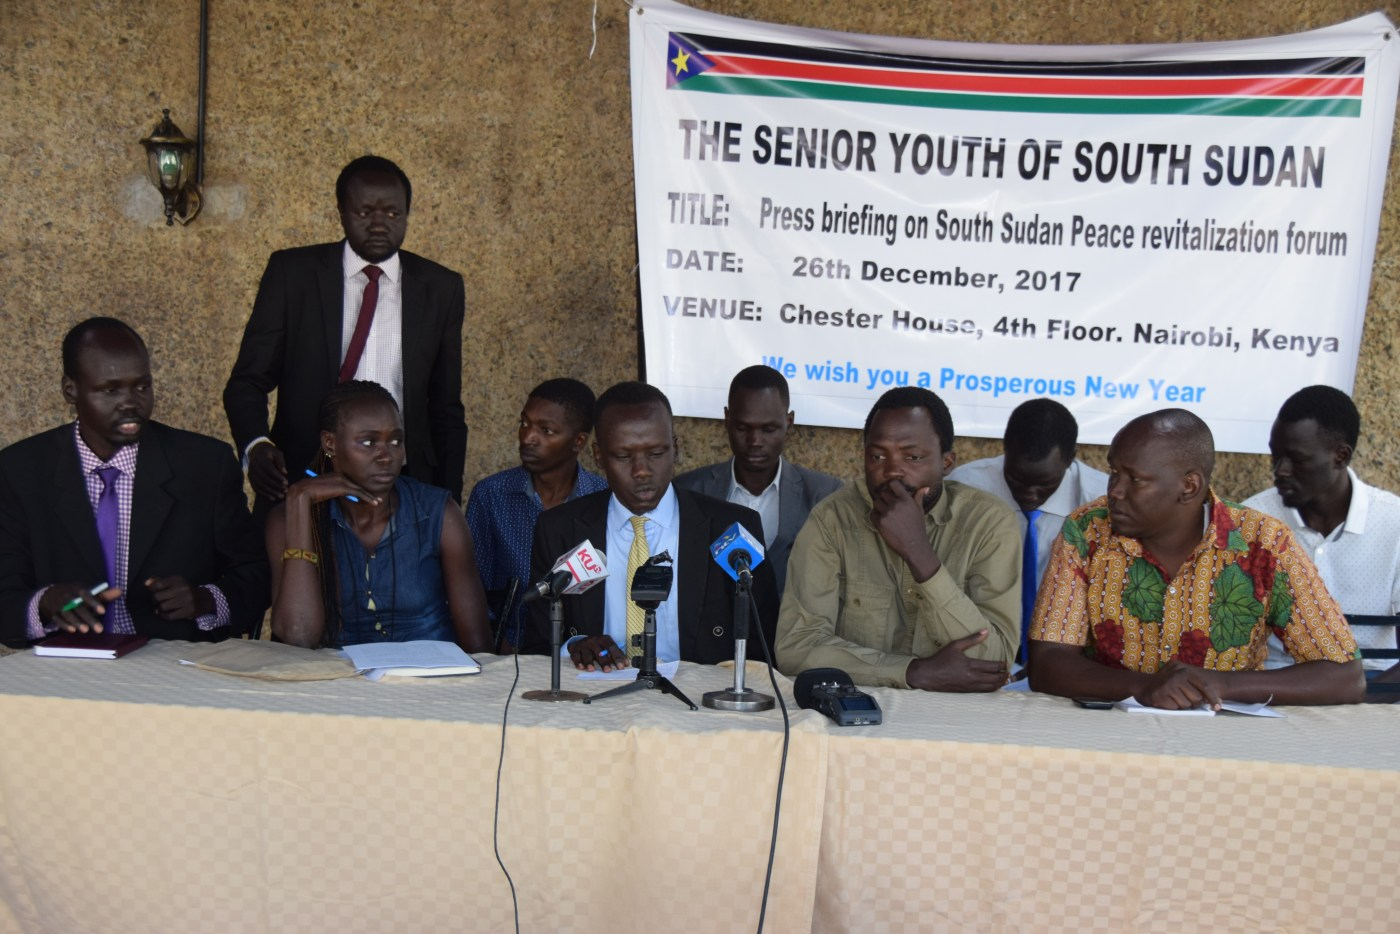 Members of The Senior Youth of South Sudan holding a media press briefing in Nairobi, Kenya, in December 2017(Photo: supplied)